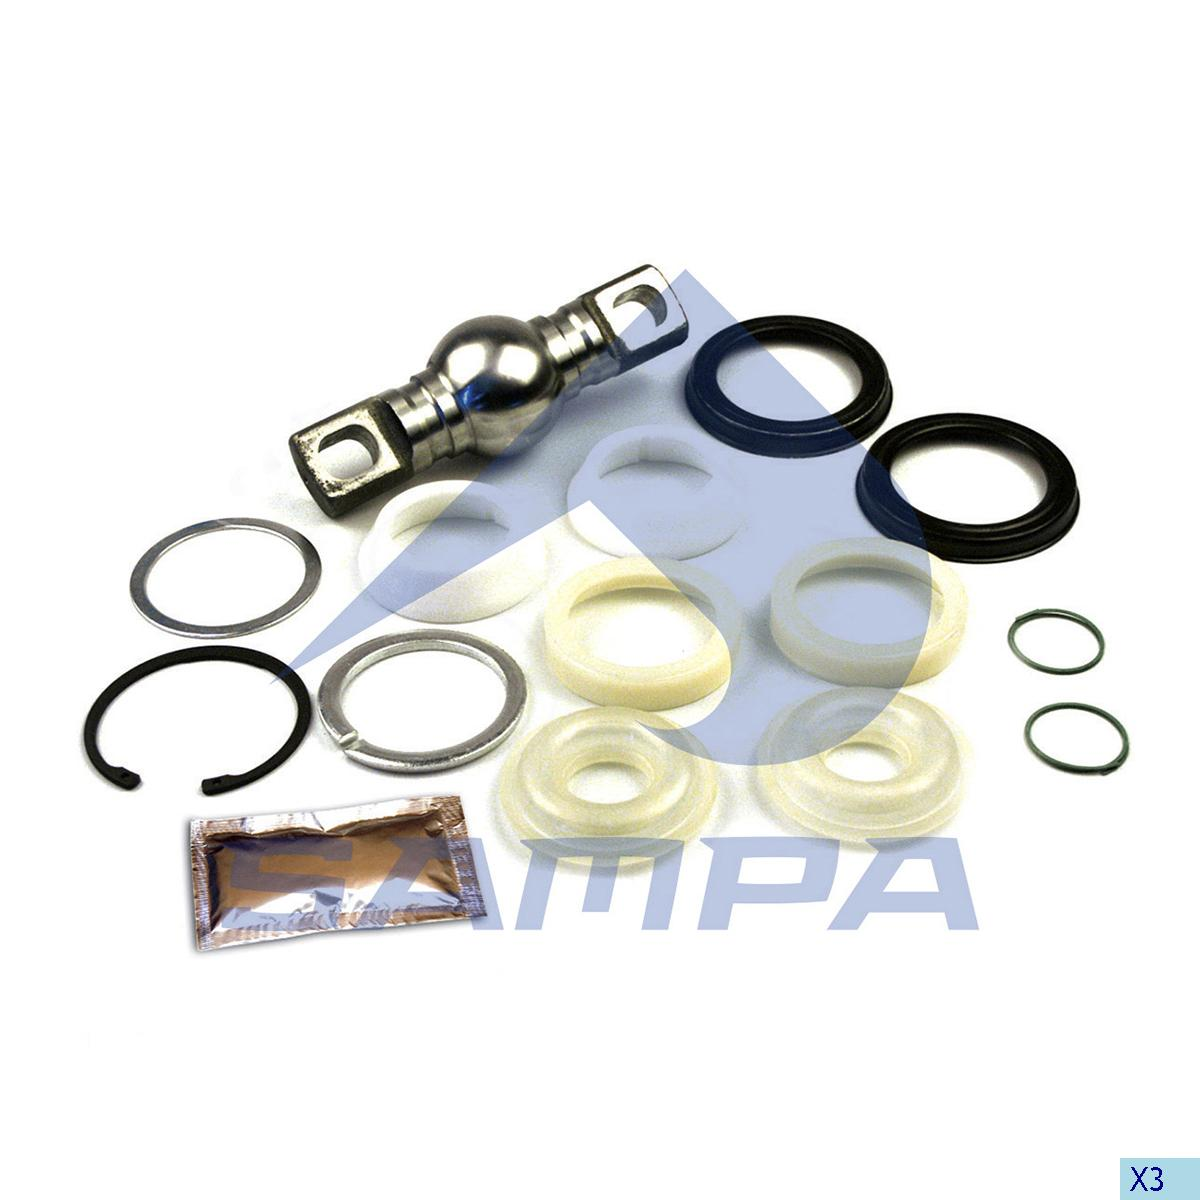 Repair Kit, Axle Rod, Mercedes, Suspension